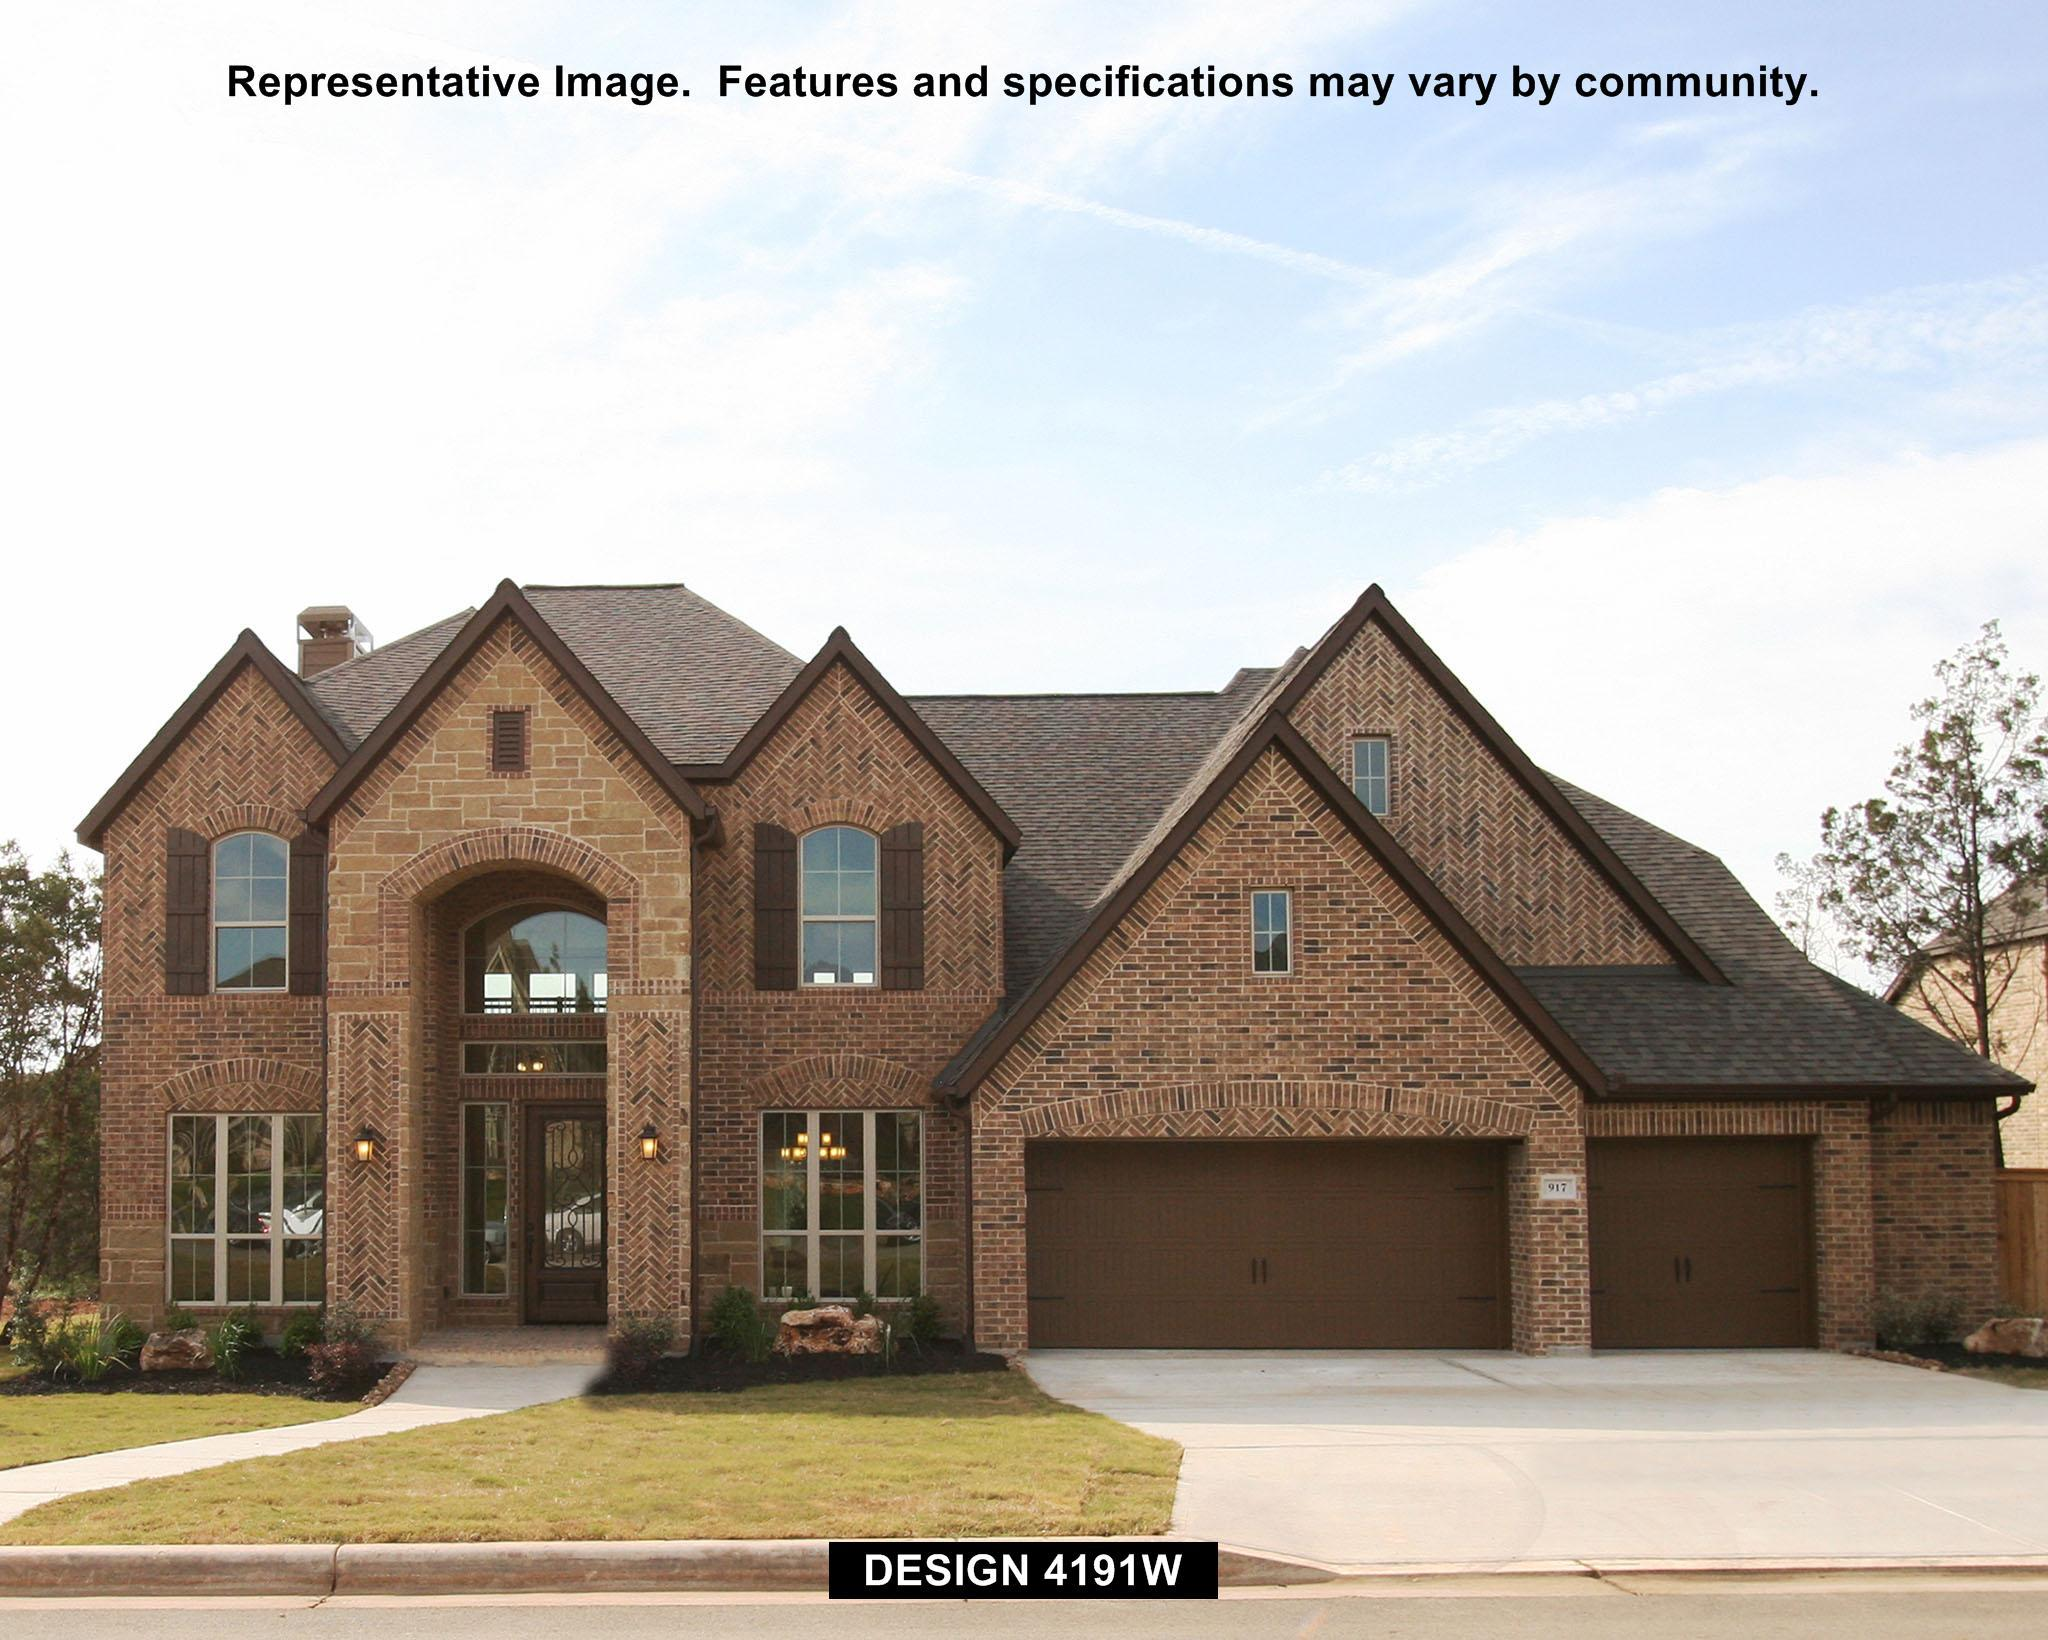 Single Family for Sale at River Valley 70' - 4191w 7986 Cibolo View Fair Oaks Ranch, Texas 78015 United States